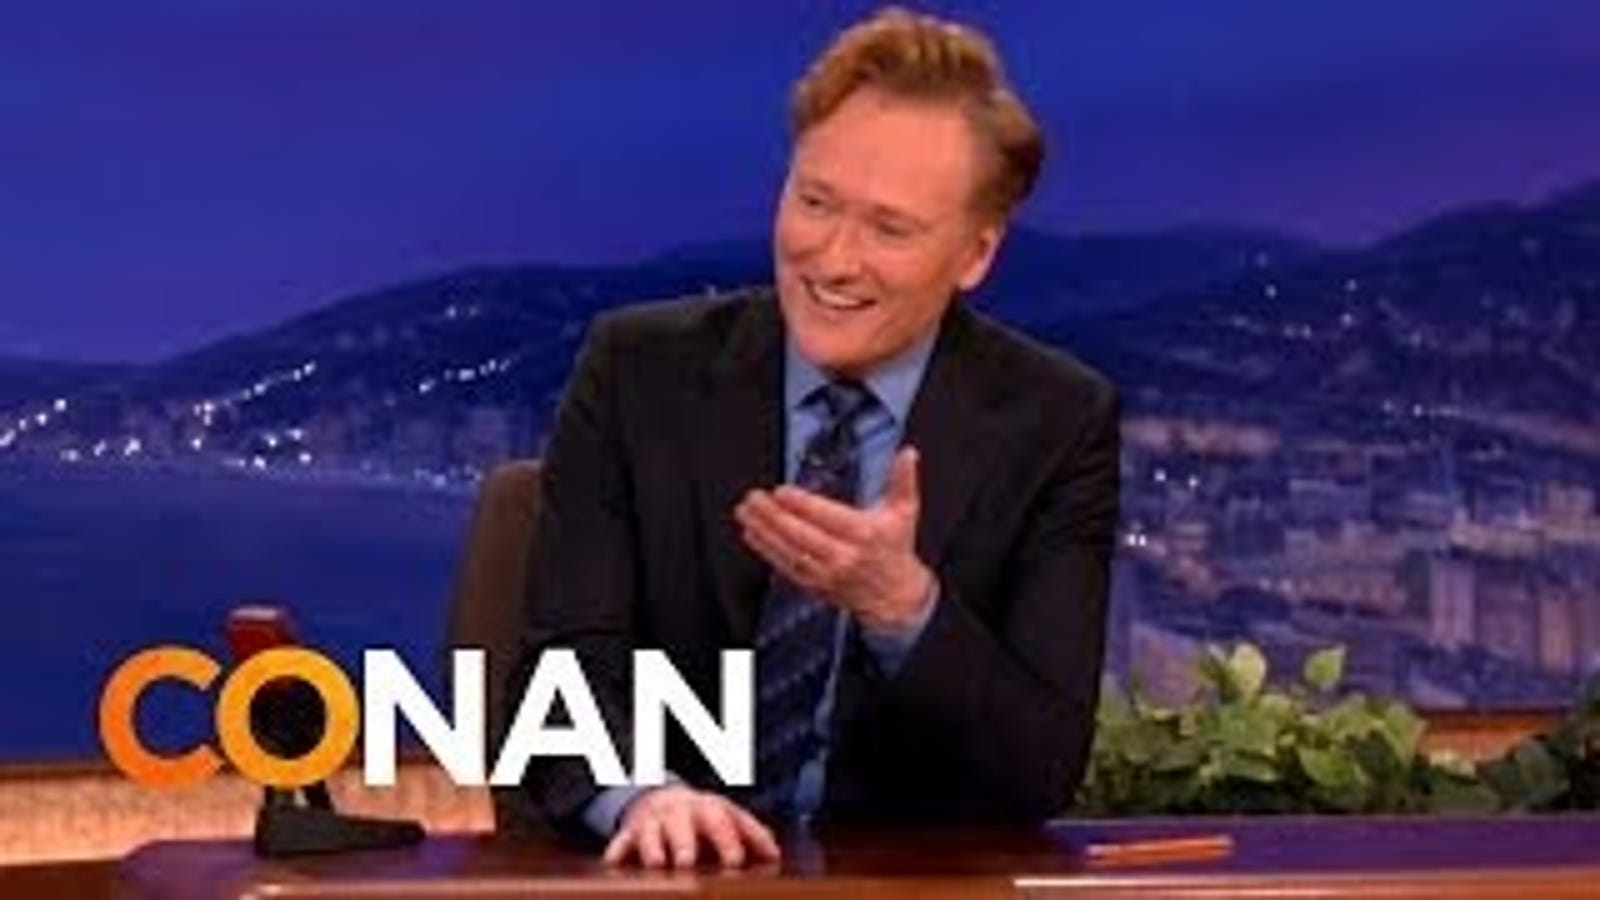 Watch Conan Solve His Own Show's Technical Difficulties